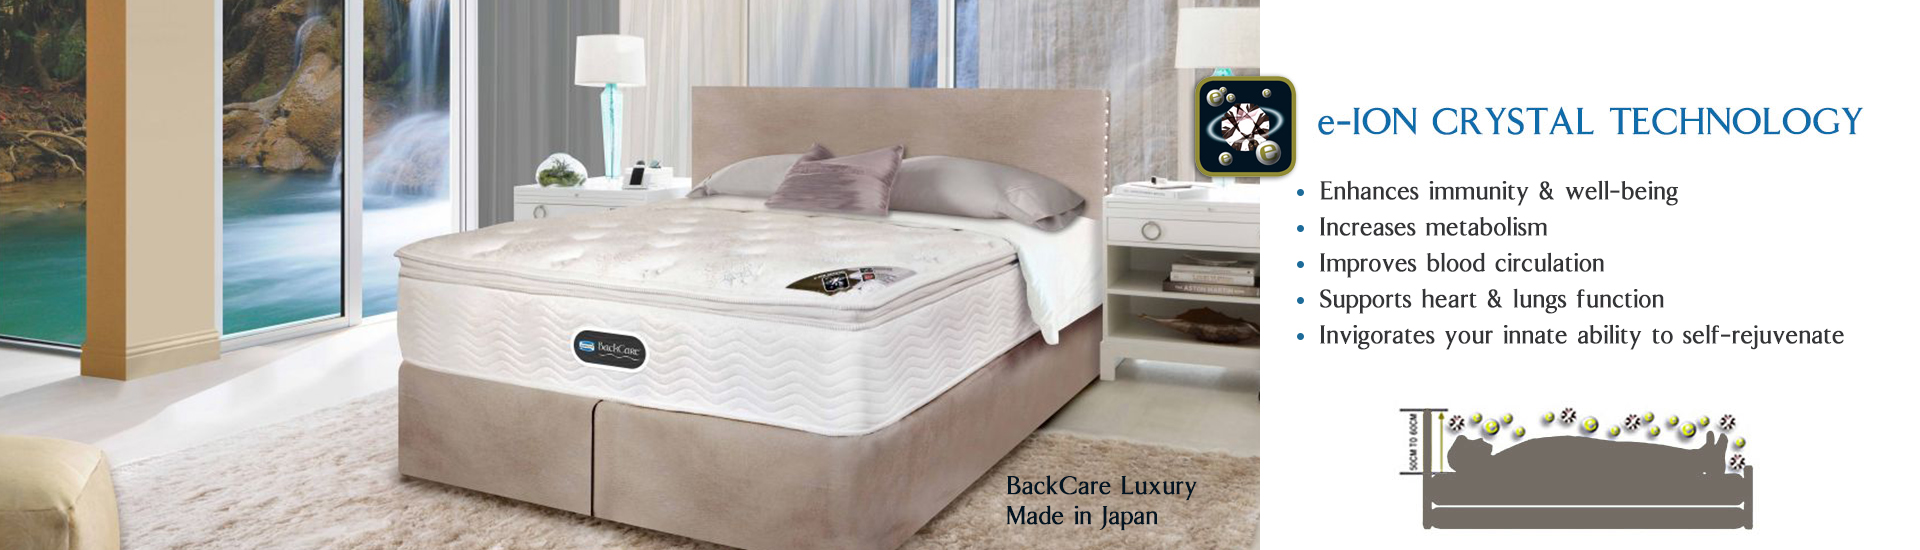 simmons mattress logo. LIVING LIFE FULLY CHARGED :: Simmons Bedding And Furniture (Thailand) Co., Ltd. Mattress Logo